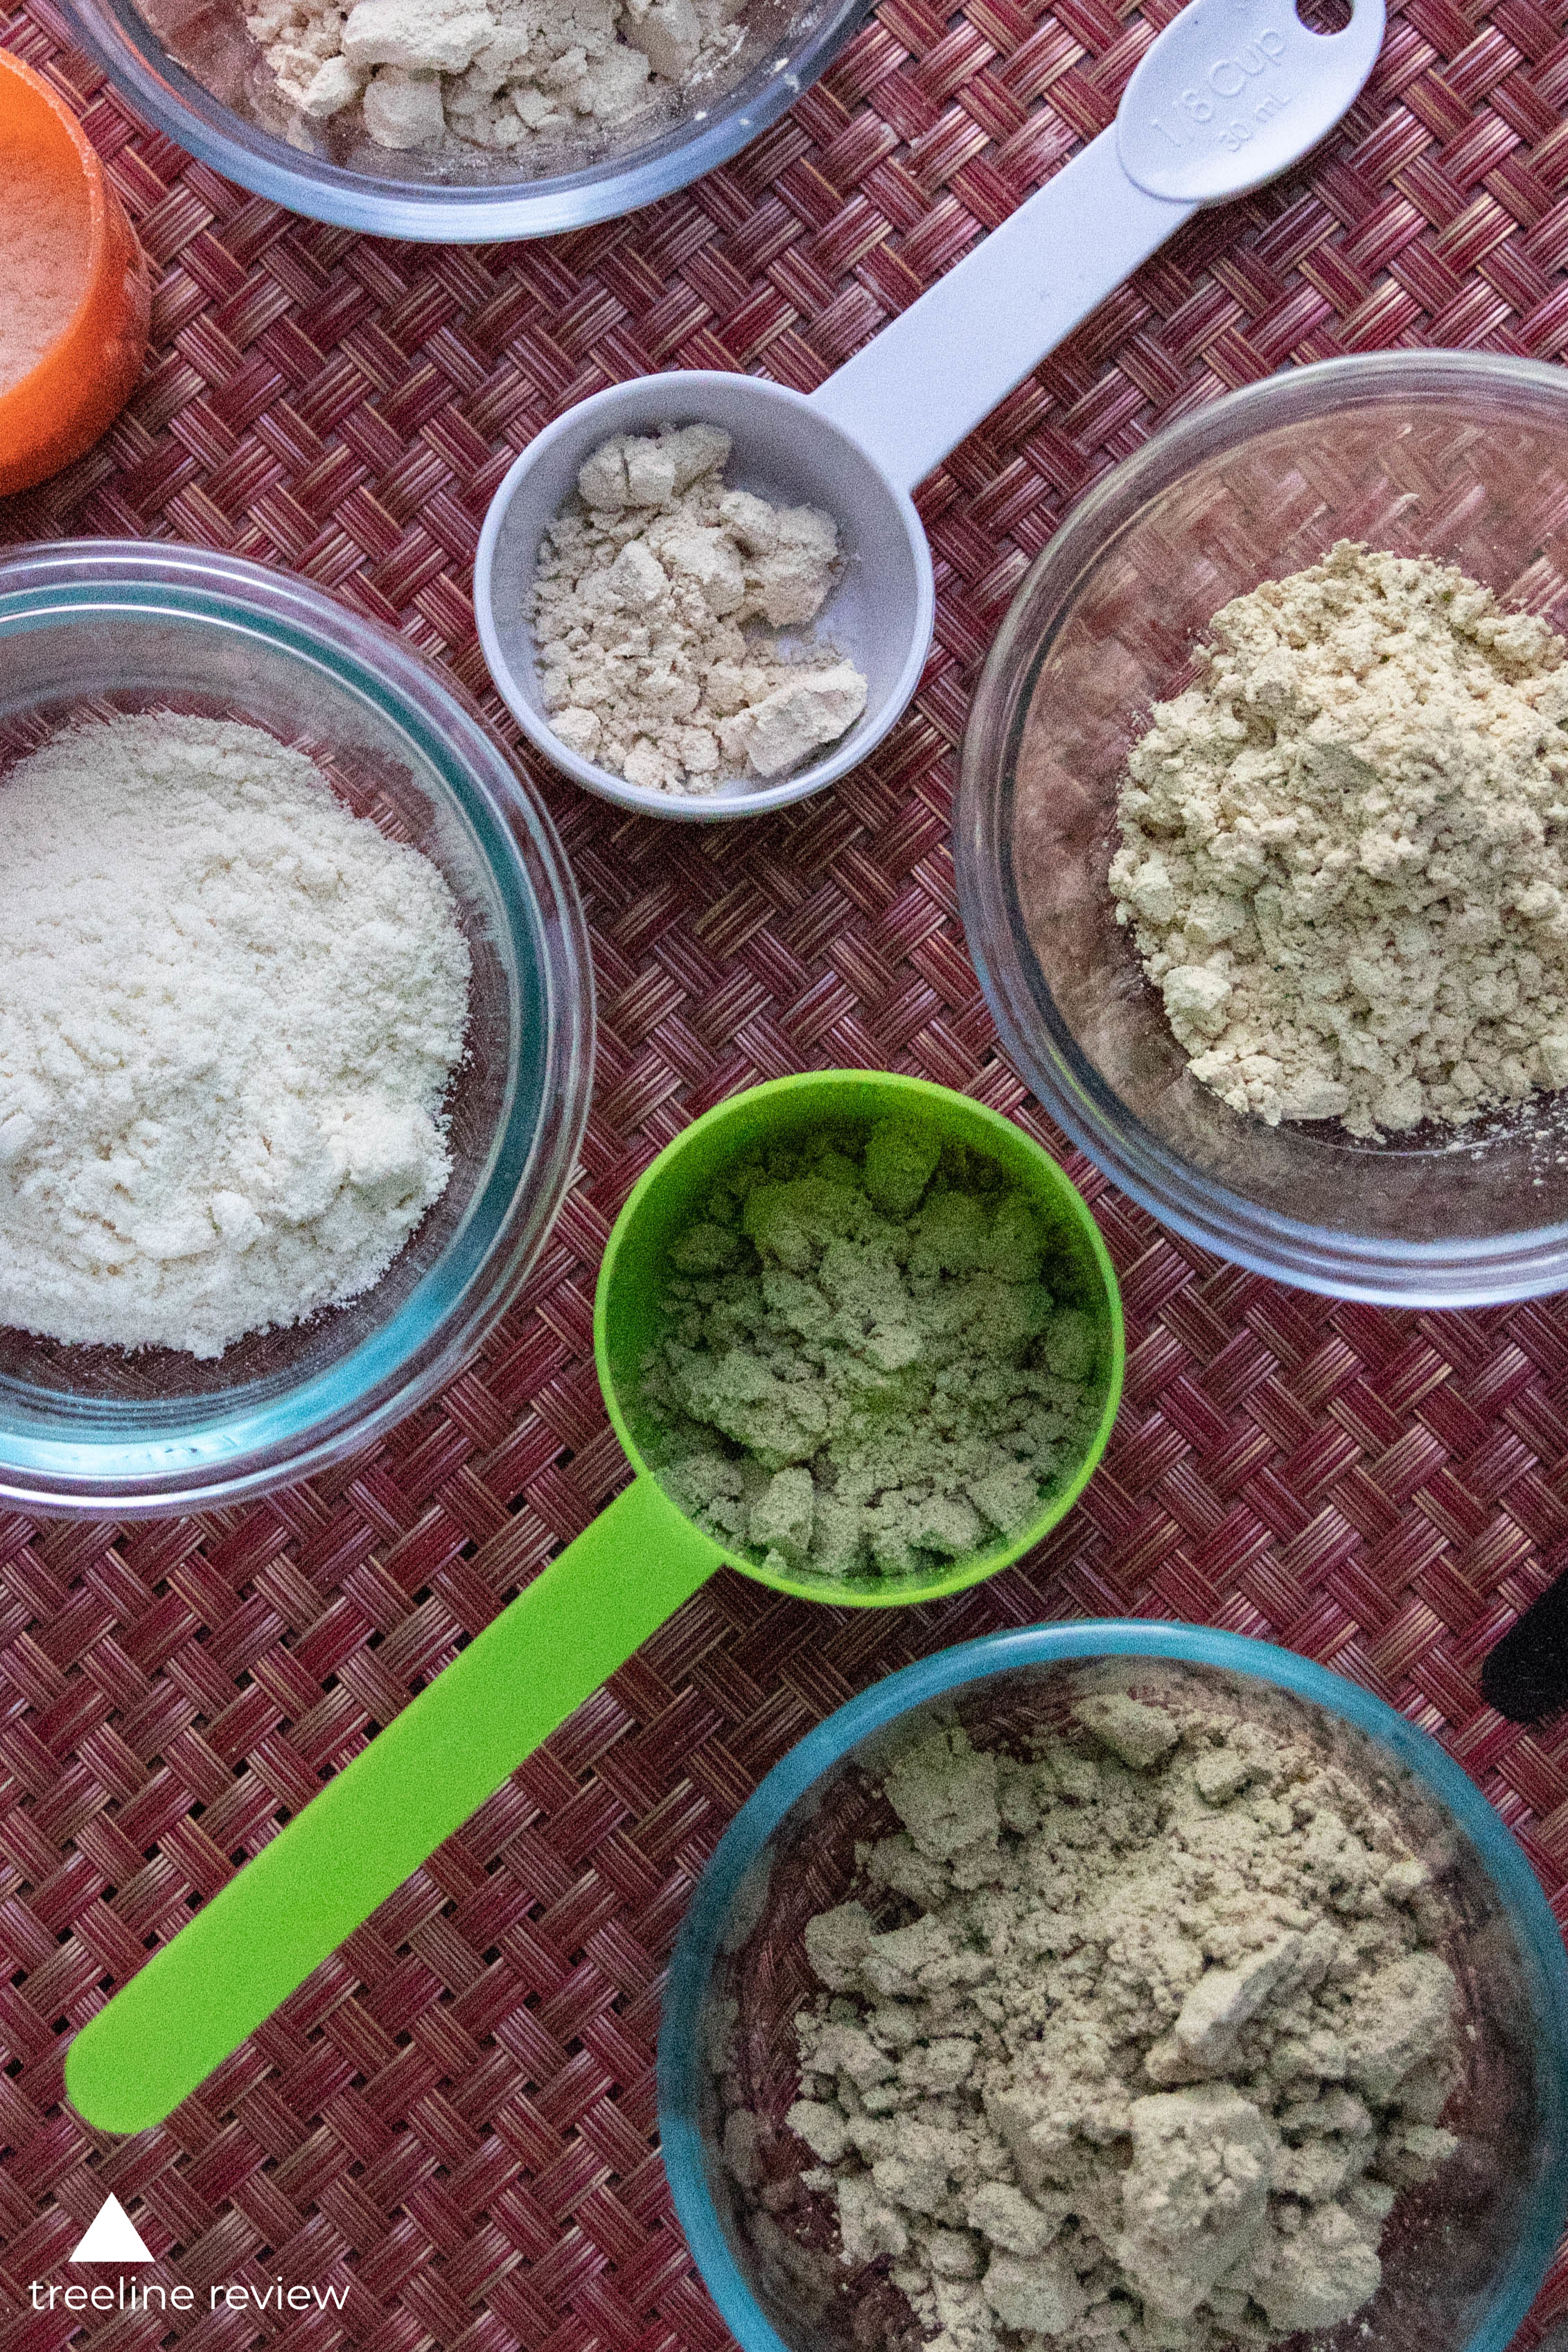 read the full Read our Comparative review of protein powder here -